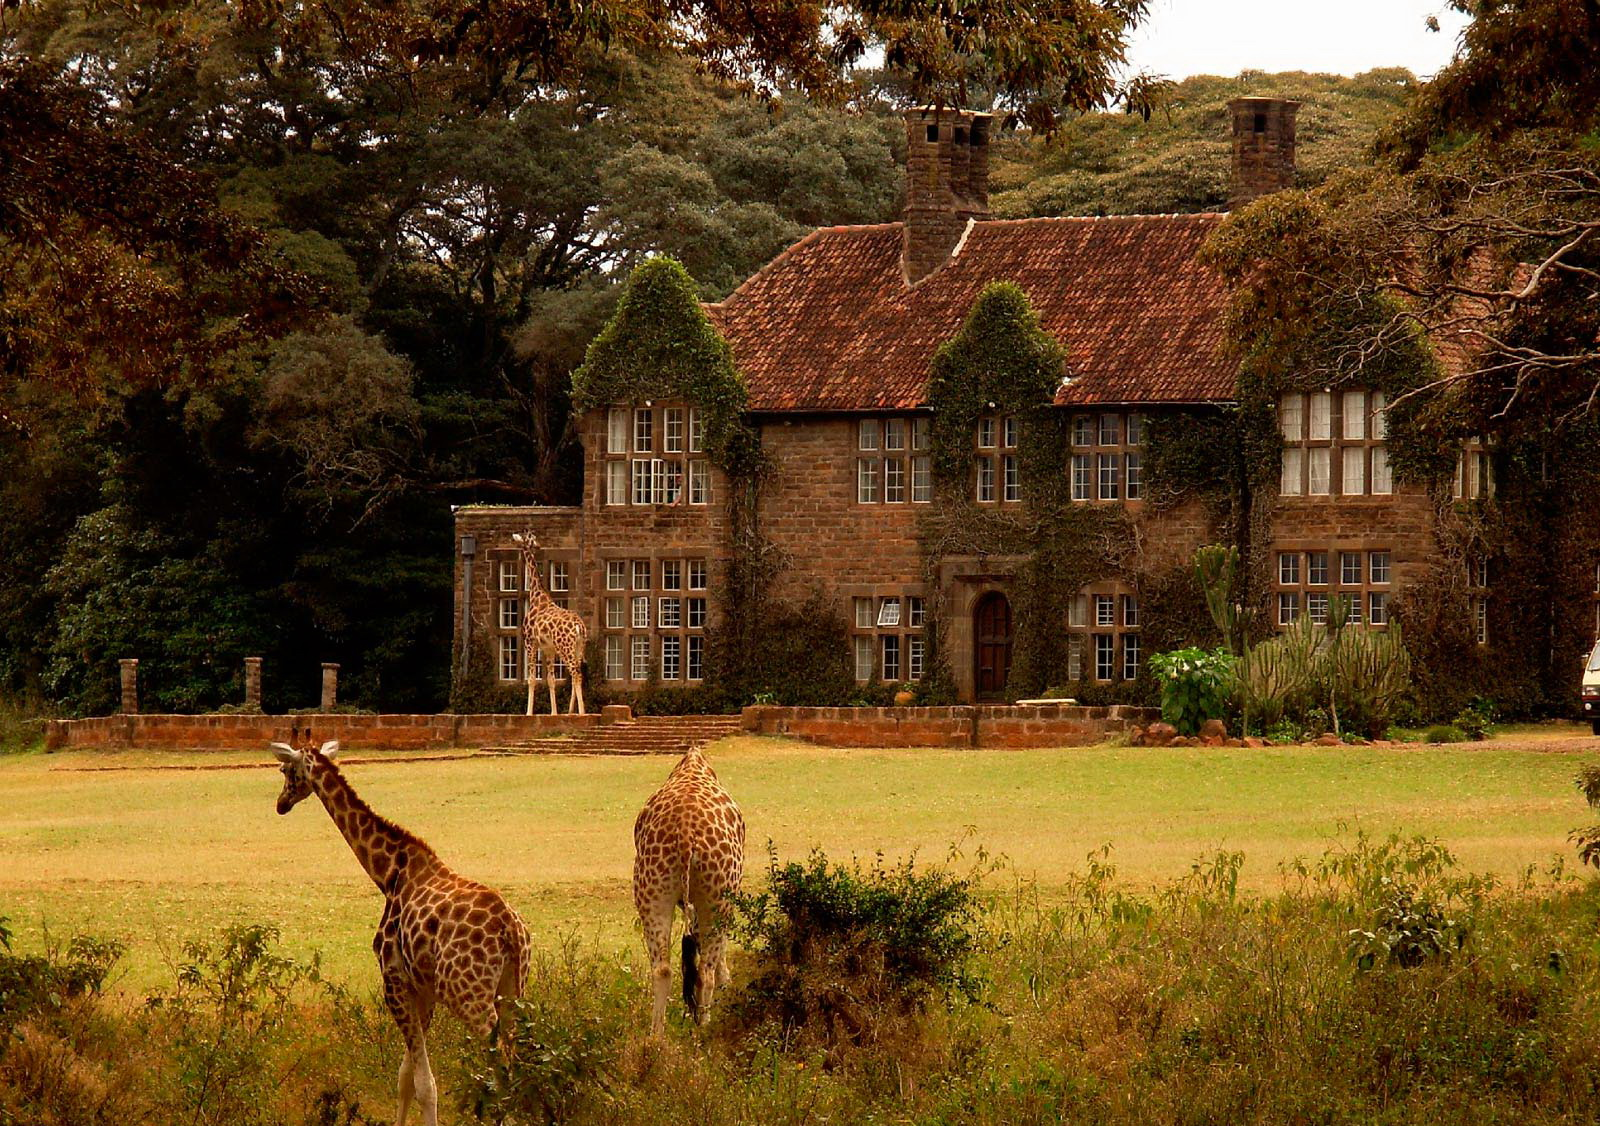 giraffe-centre-in-nairobi-kenya-by-phillip-black-2007